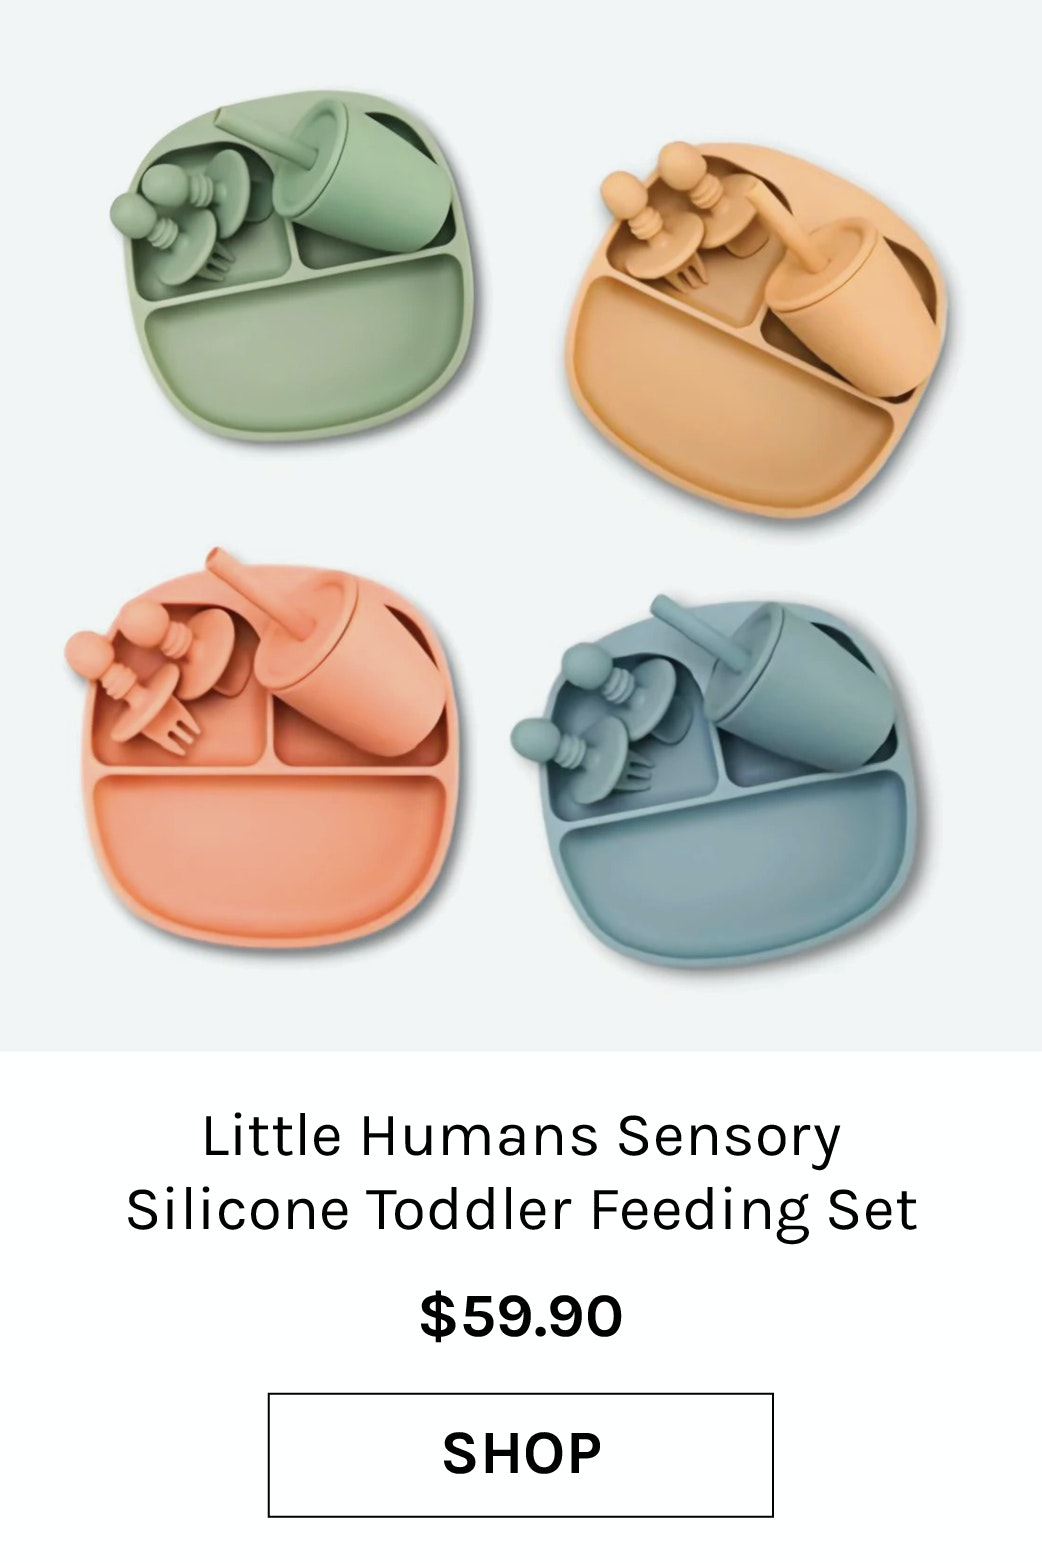 Little Humans Sensory Silicone Toddler Feeding Set with Smoothie Cup